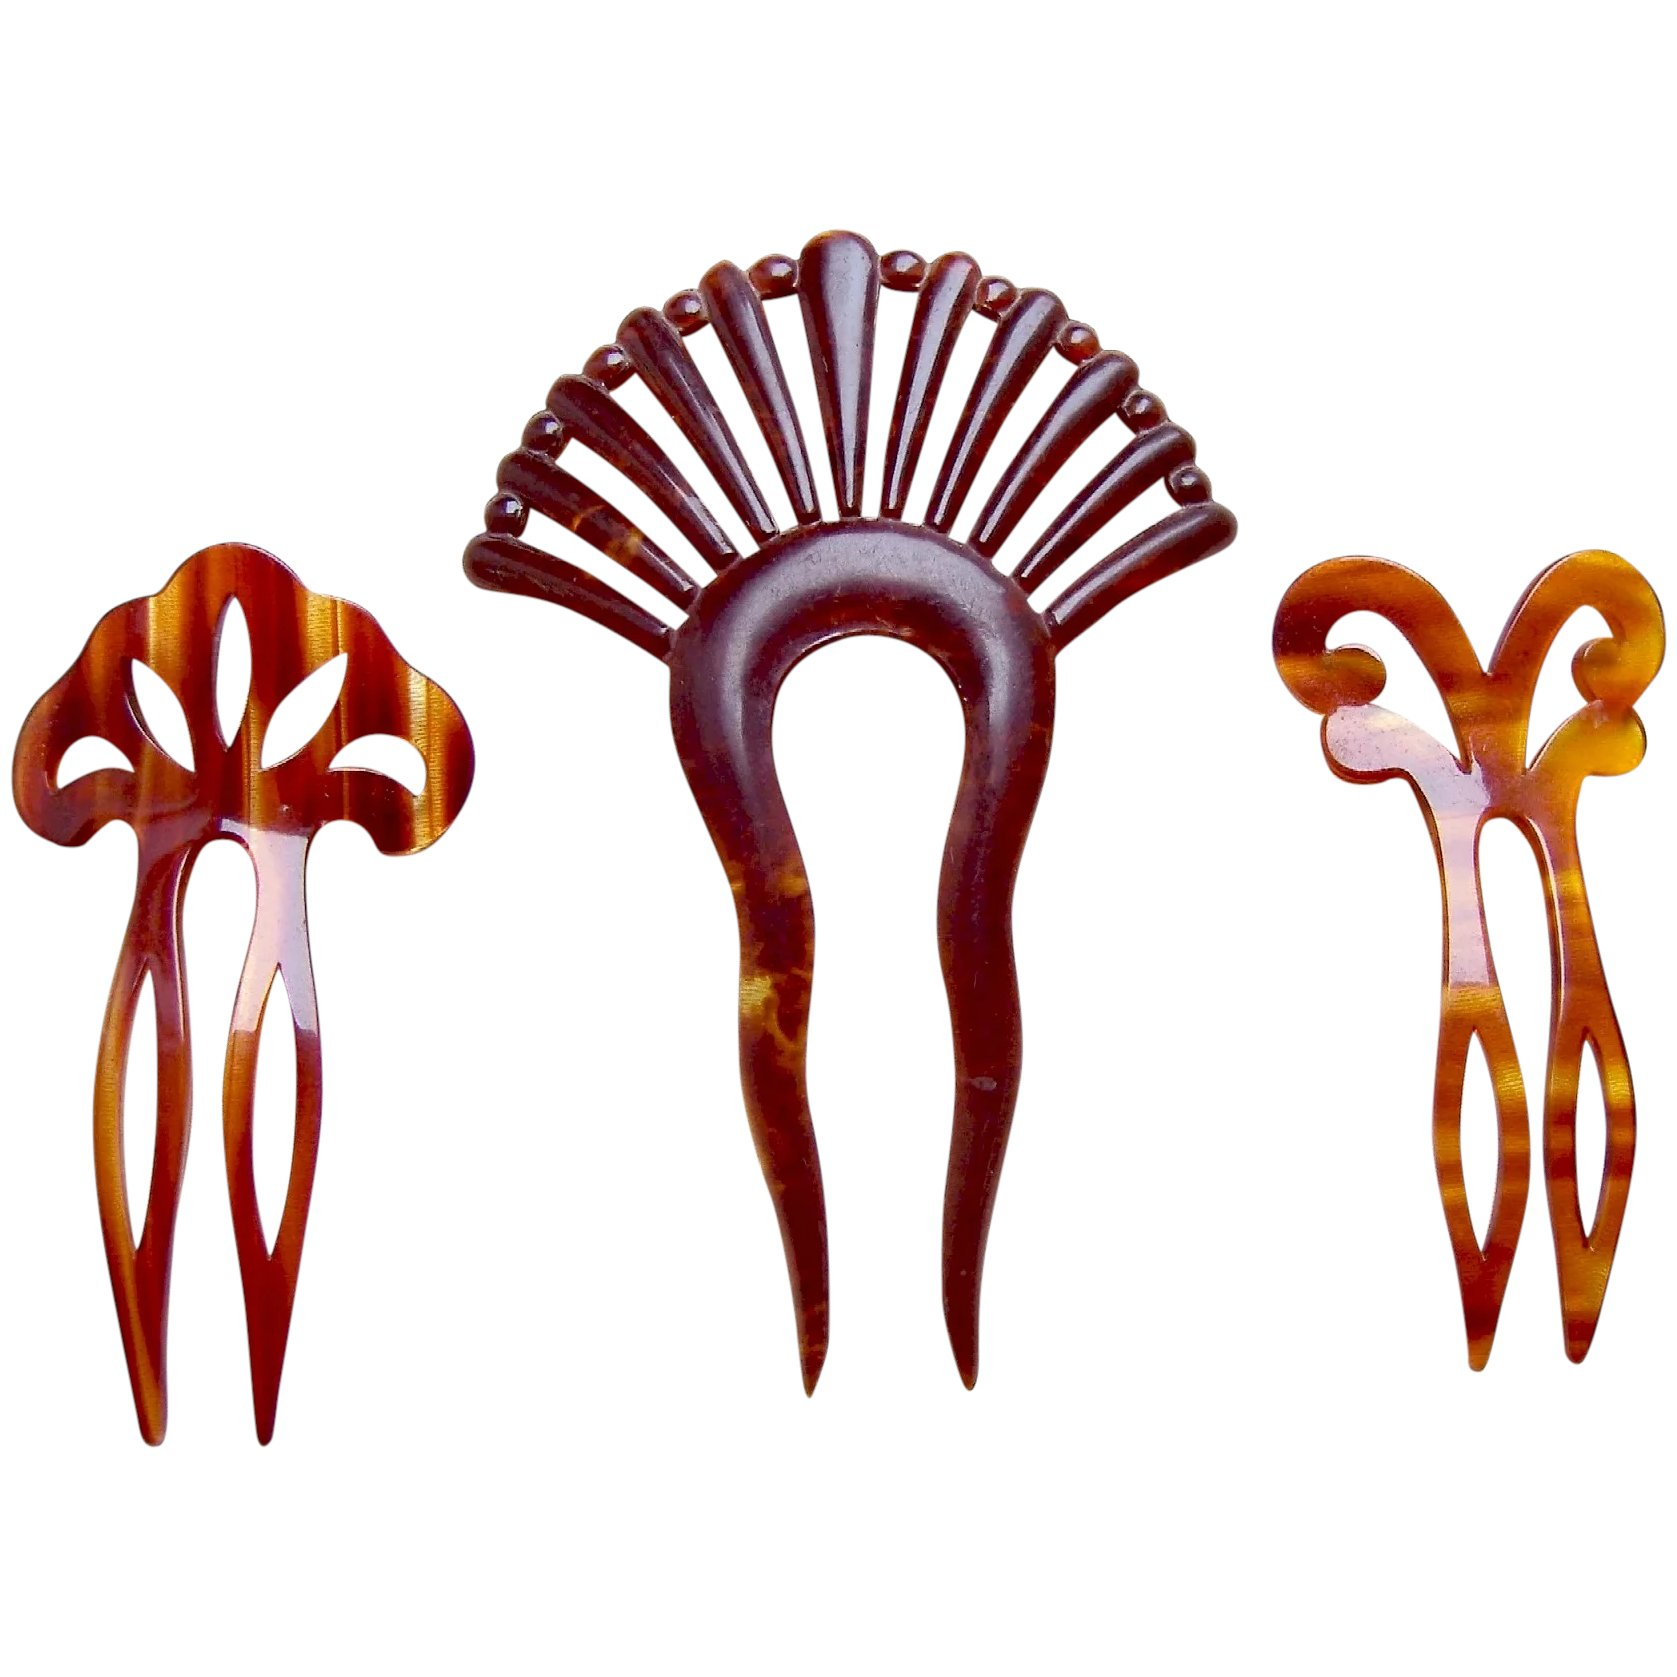 Three Art Deco Period Hair Combs Celluloid Hair Accessories Vanity The Spanish Comb Ruby Lane